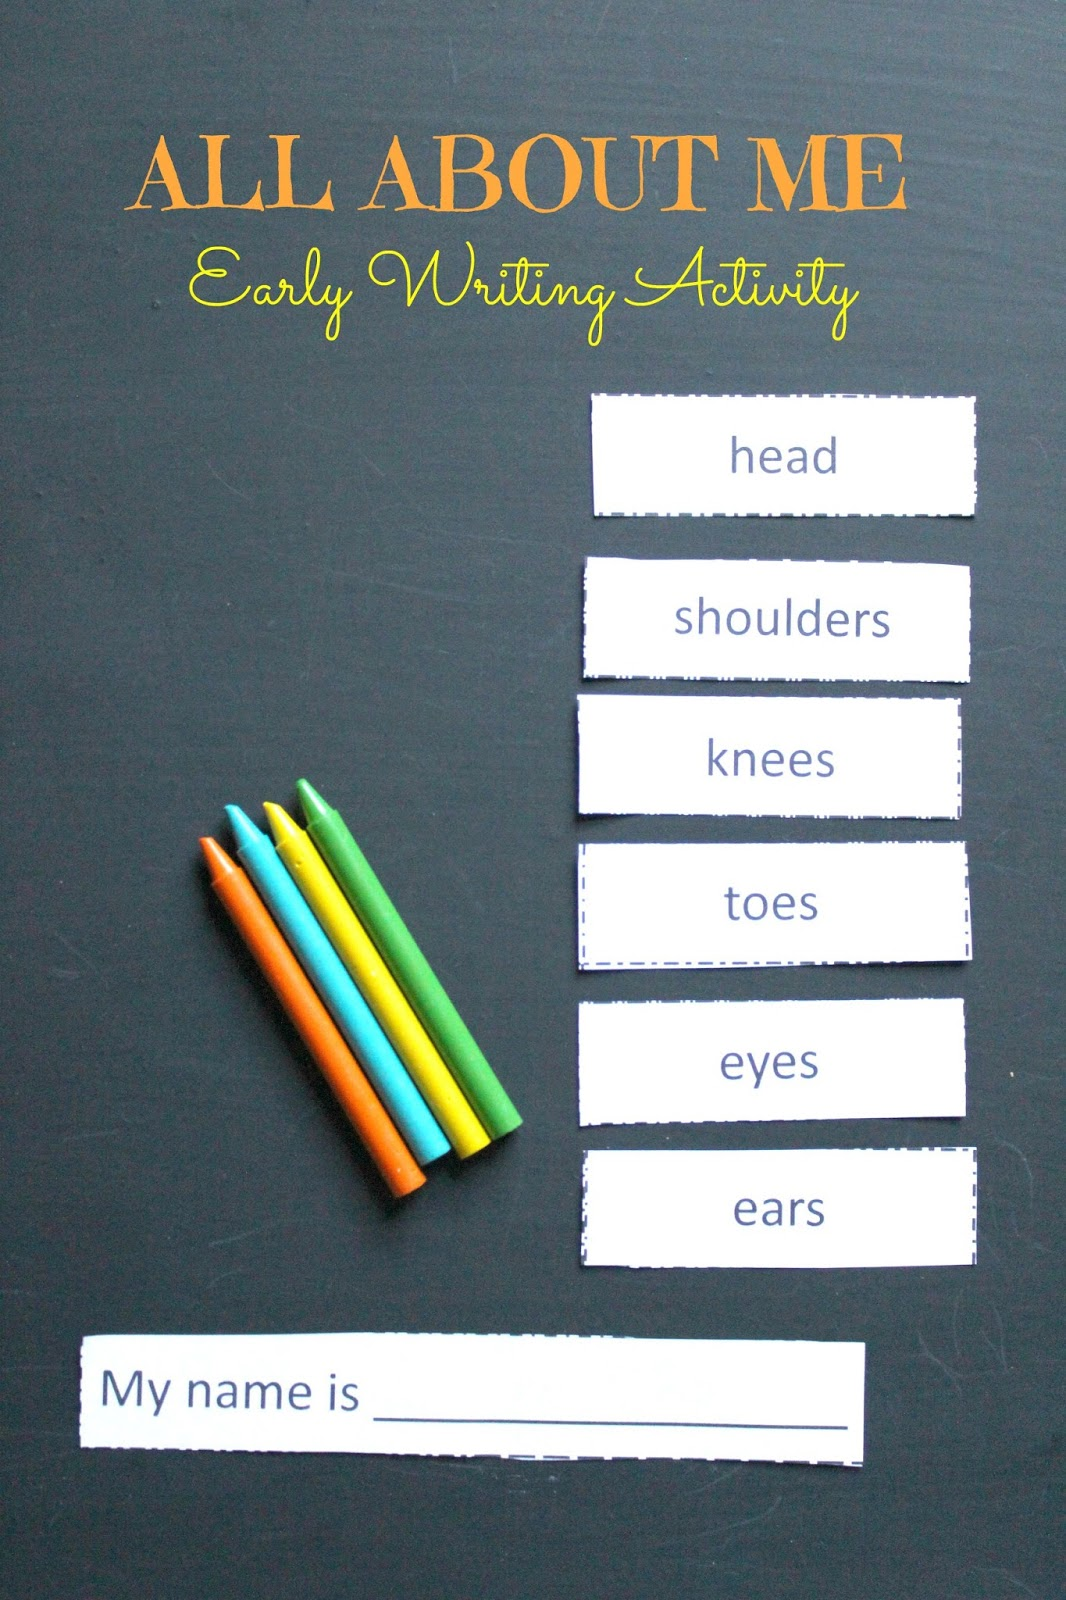 All About Me Writing Activity For Young Children Free Printable For Parents And Teachers